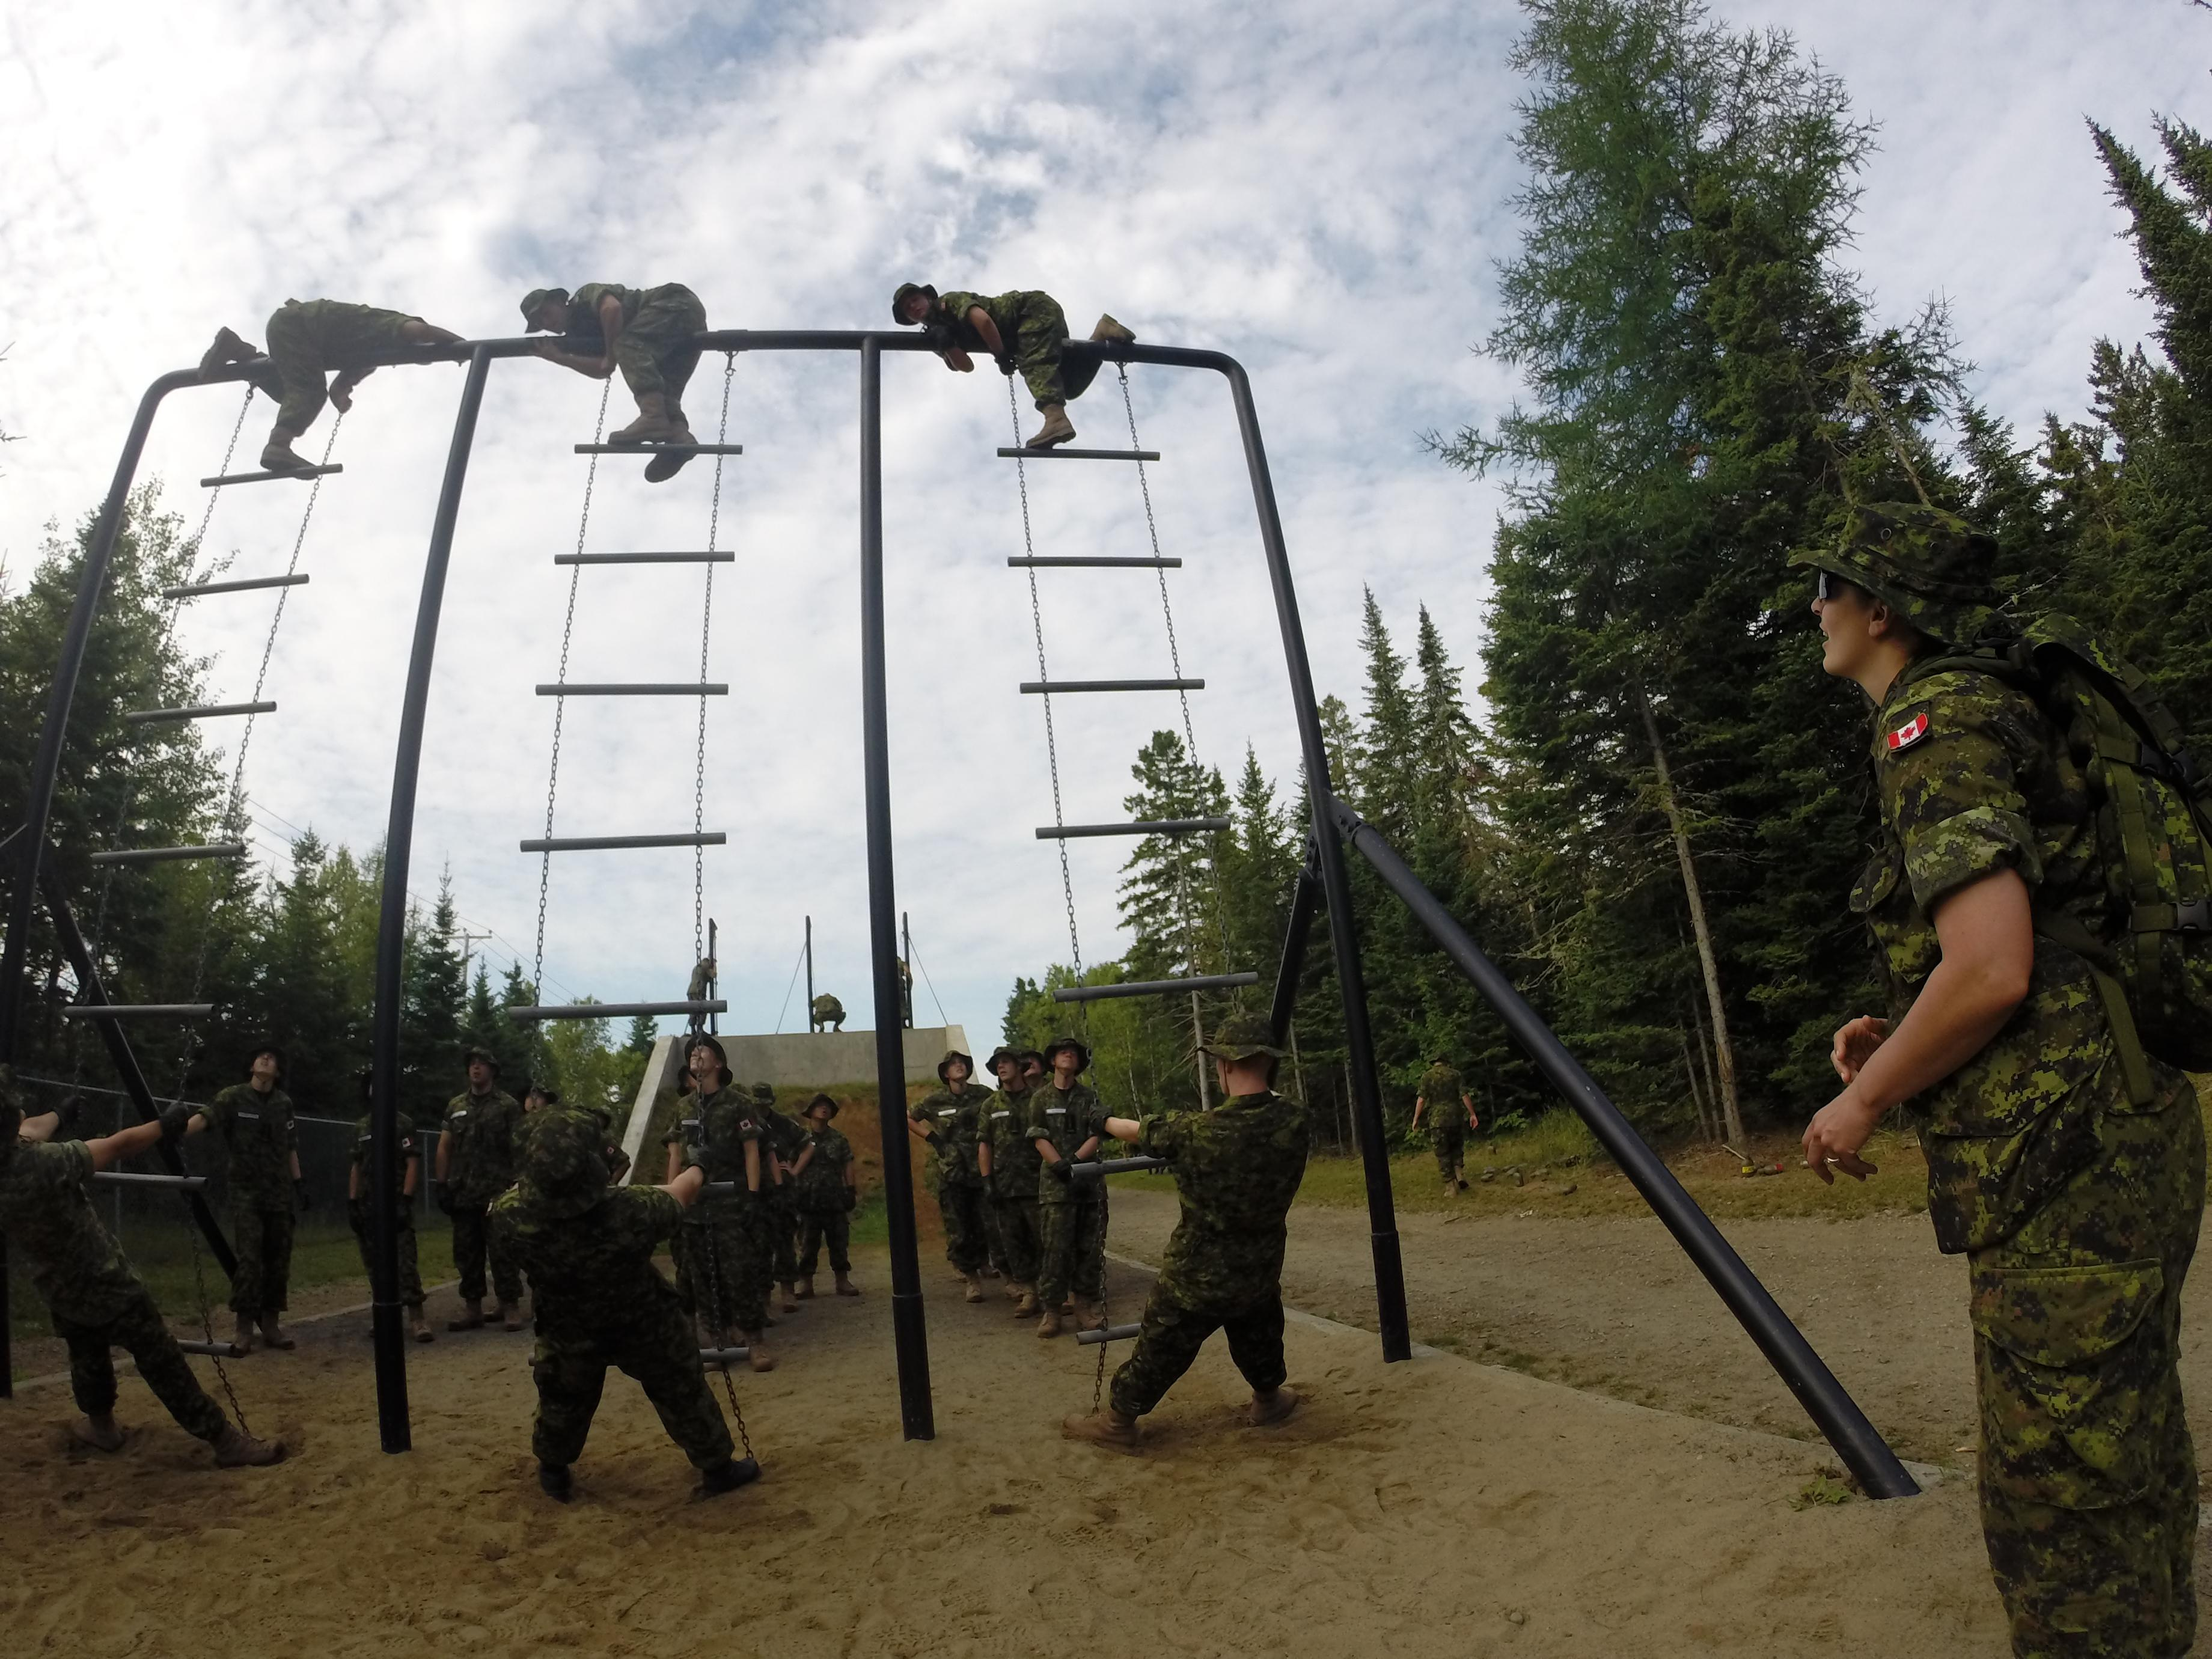 Recruits on the obstacles course during their Basic Military Qualification.